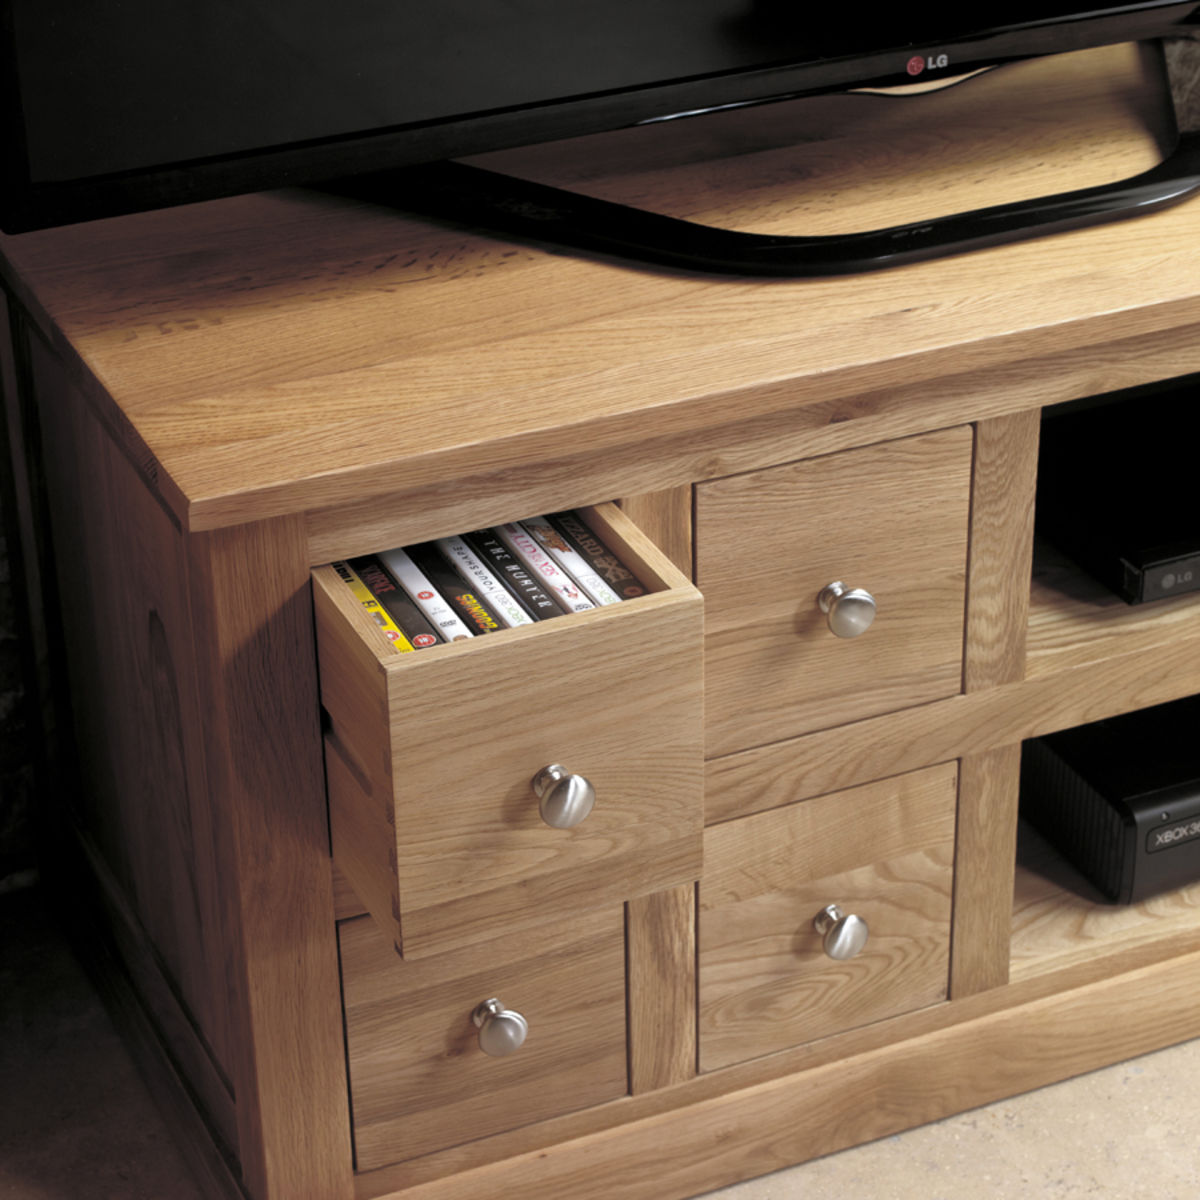 Mobel Oak Four Drawer Television Cabinet Was 163 420 00 Now 163 399 00 Wooden Furniture Store